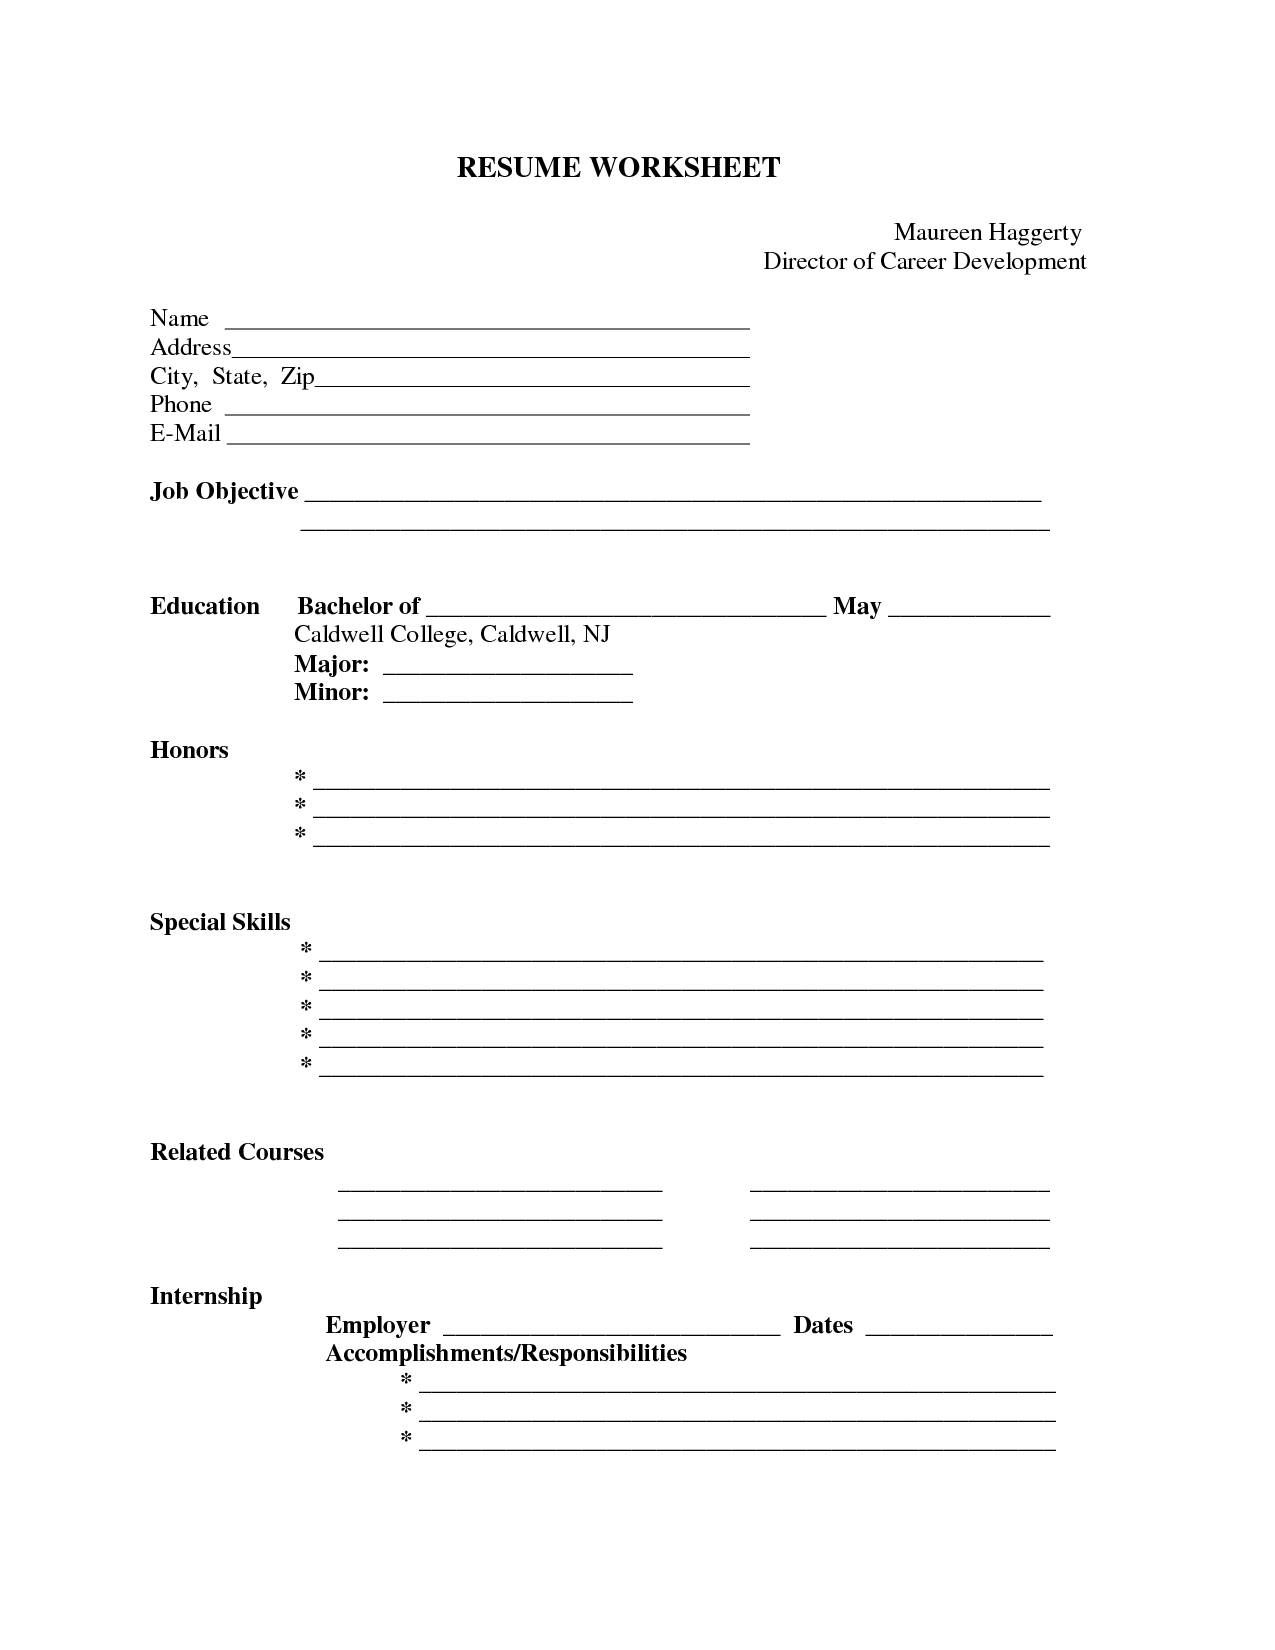 Pin by resumejob on Resume Job | Free printable resume templates